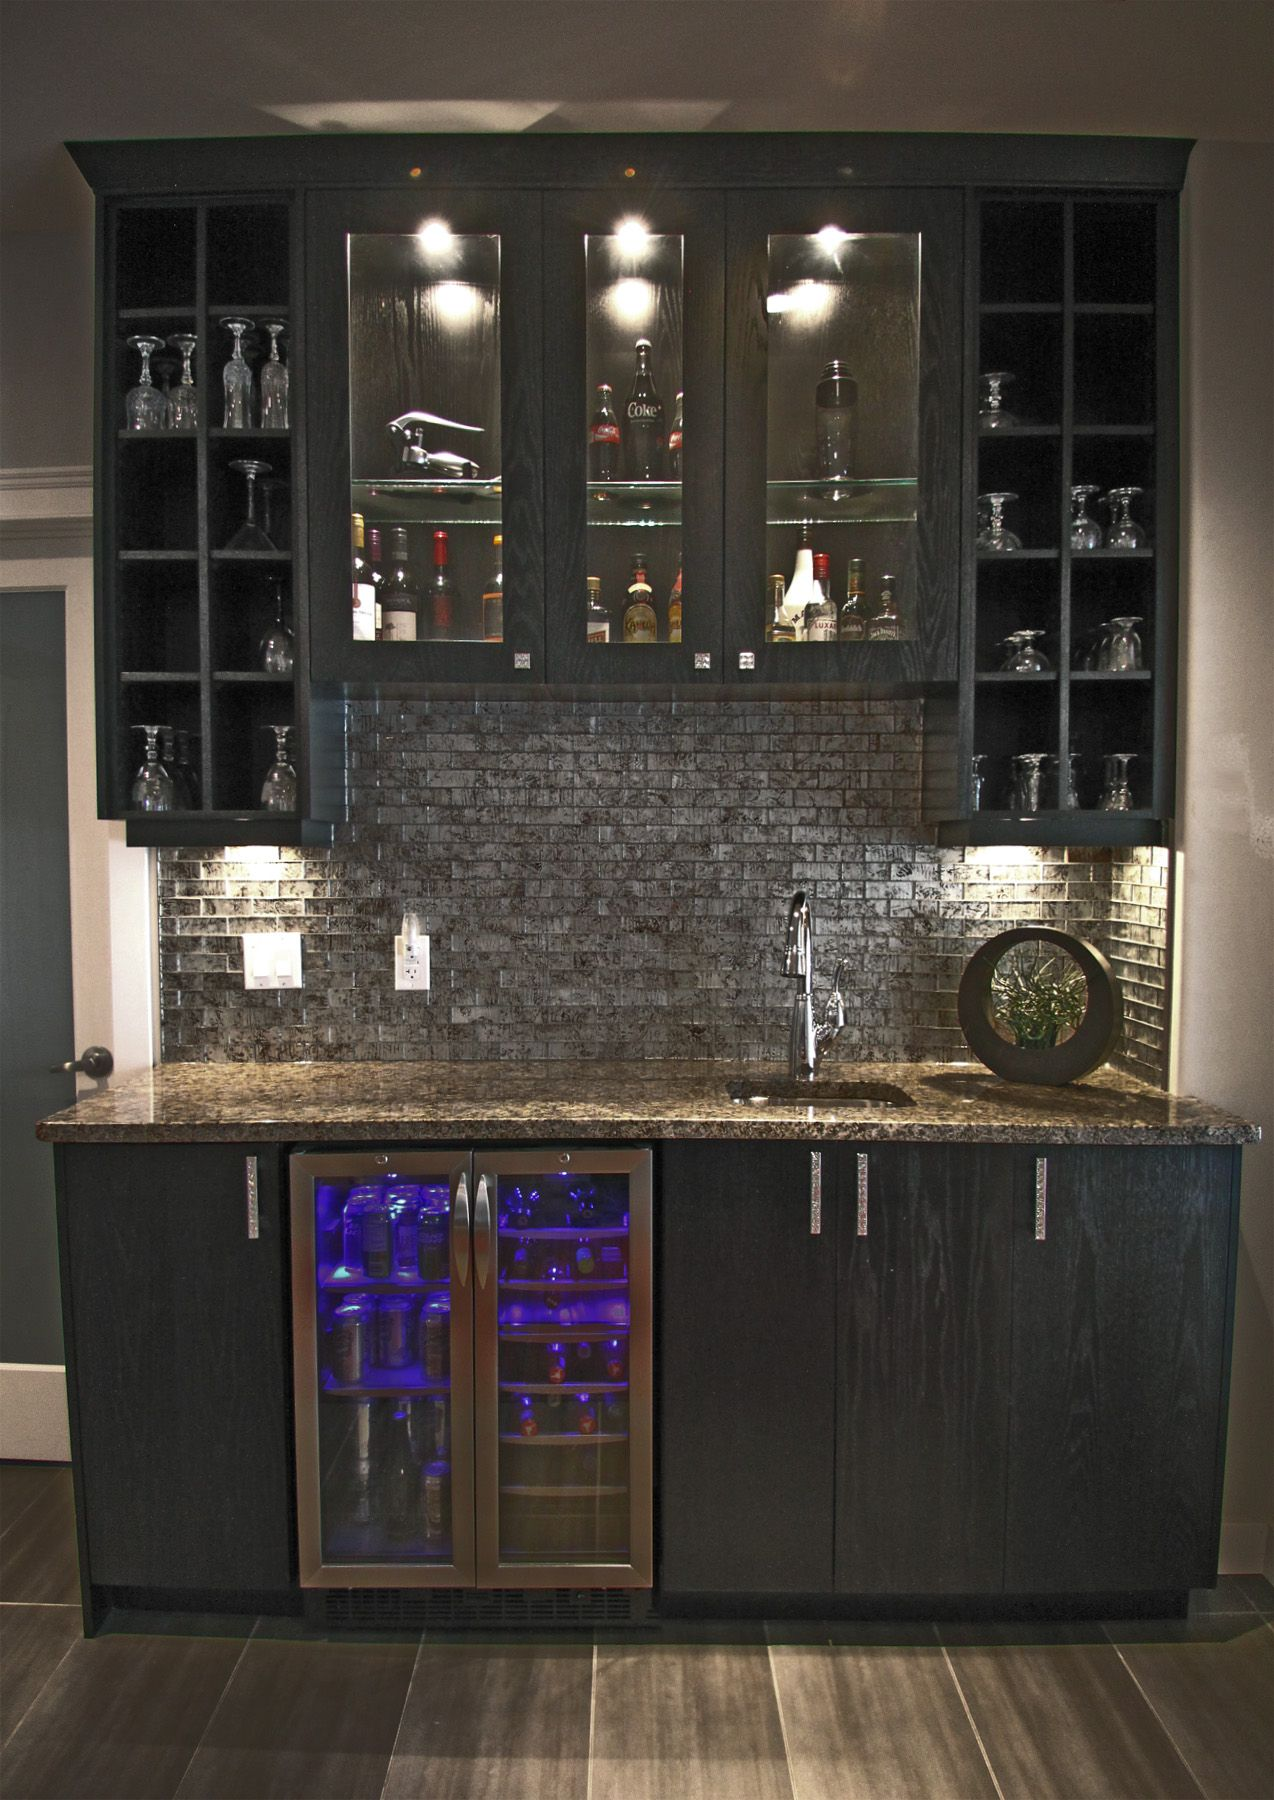 Home wet bar design w glass backsplash kitchen designs for Home bar design ideas